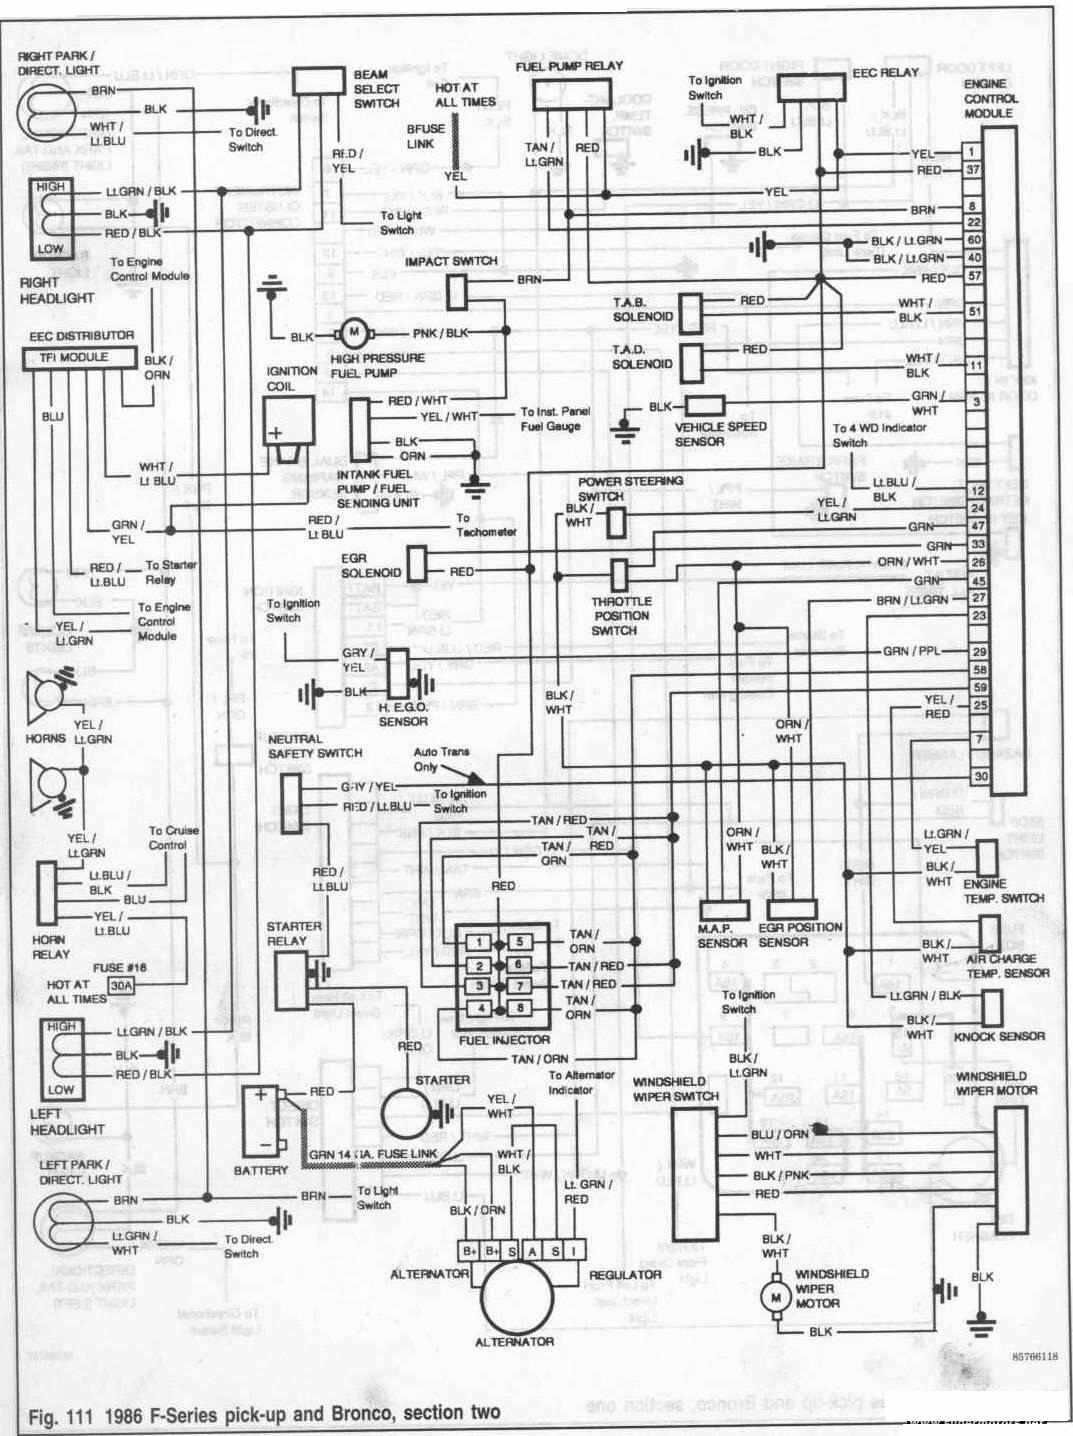 Ford+Bronco+and+F Series+Pickup+1986+Engine+Control+Module+Wiring+Diagram eec iv wiring diagram eec iv bracket \u2022 free wiring diagrams life 1989 F250 Wiring Diagram at reclaimingppi.co